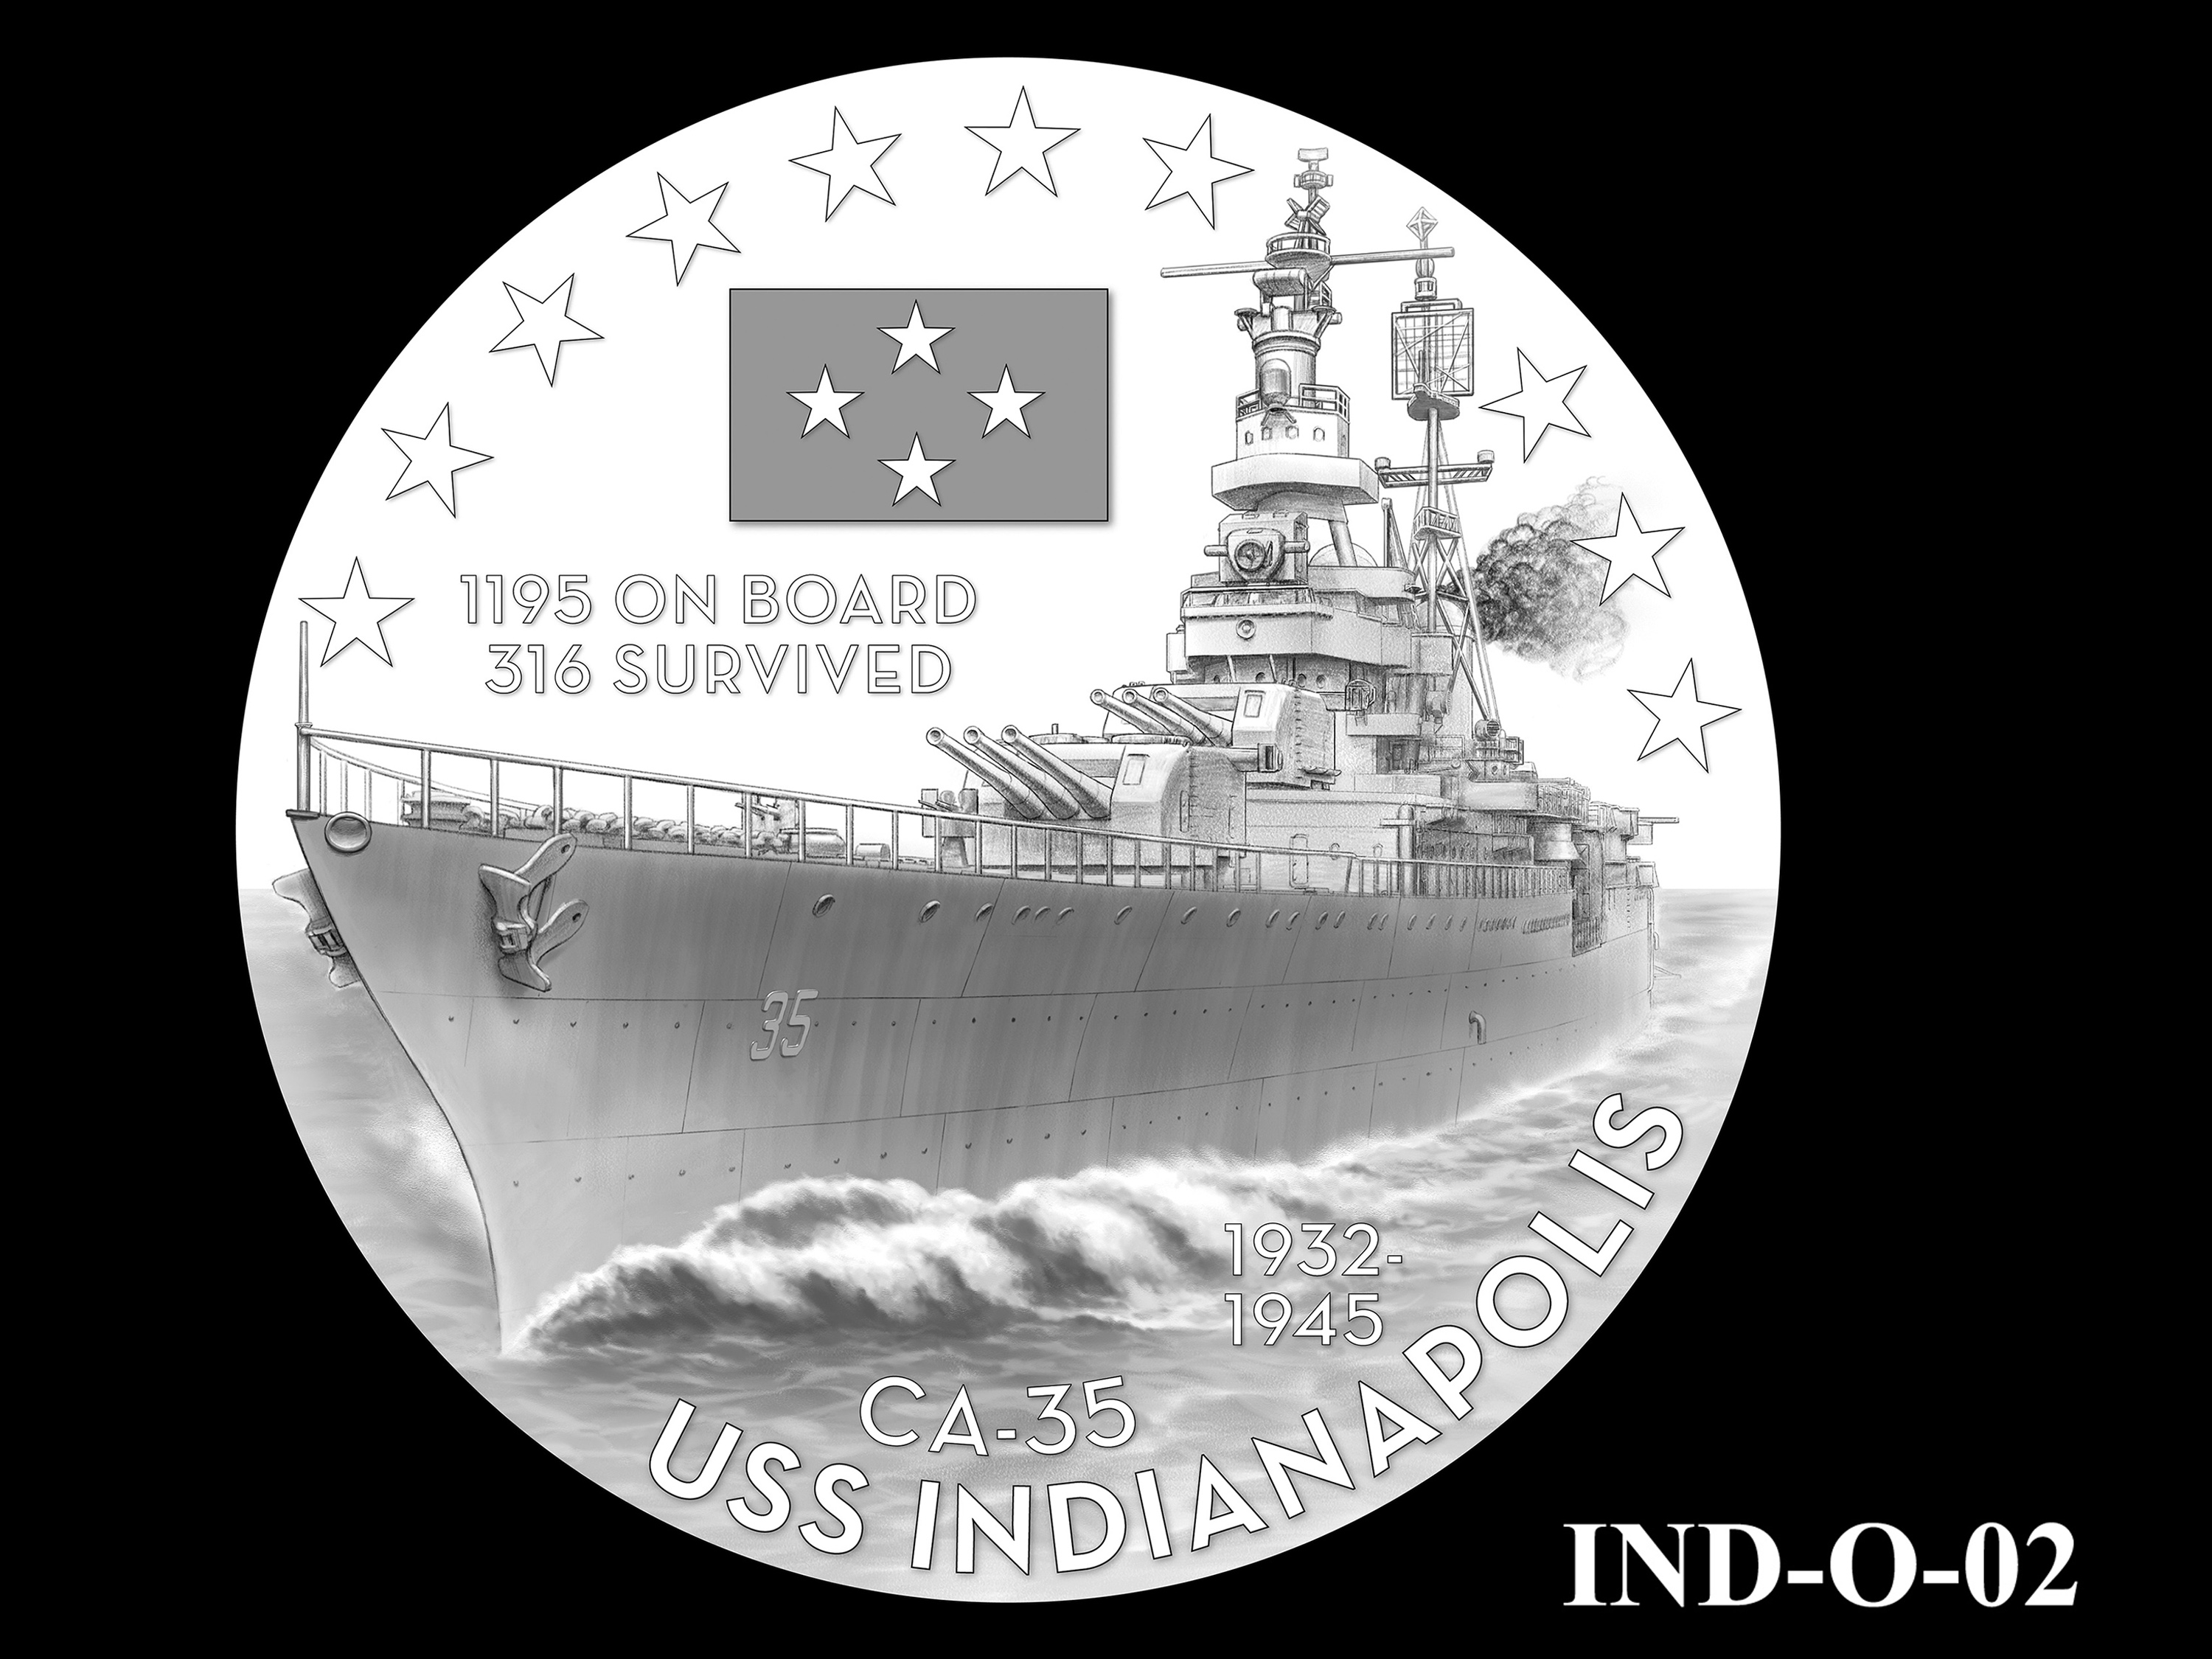 IND-O-02 - USS Indianapolis Congressional Gold Medal - Obverse